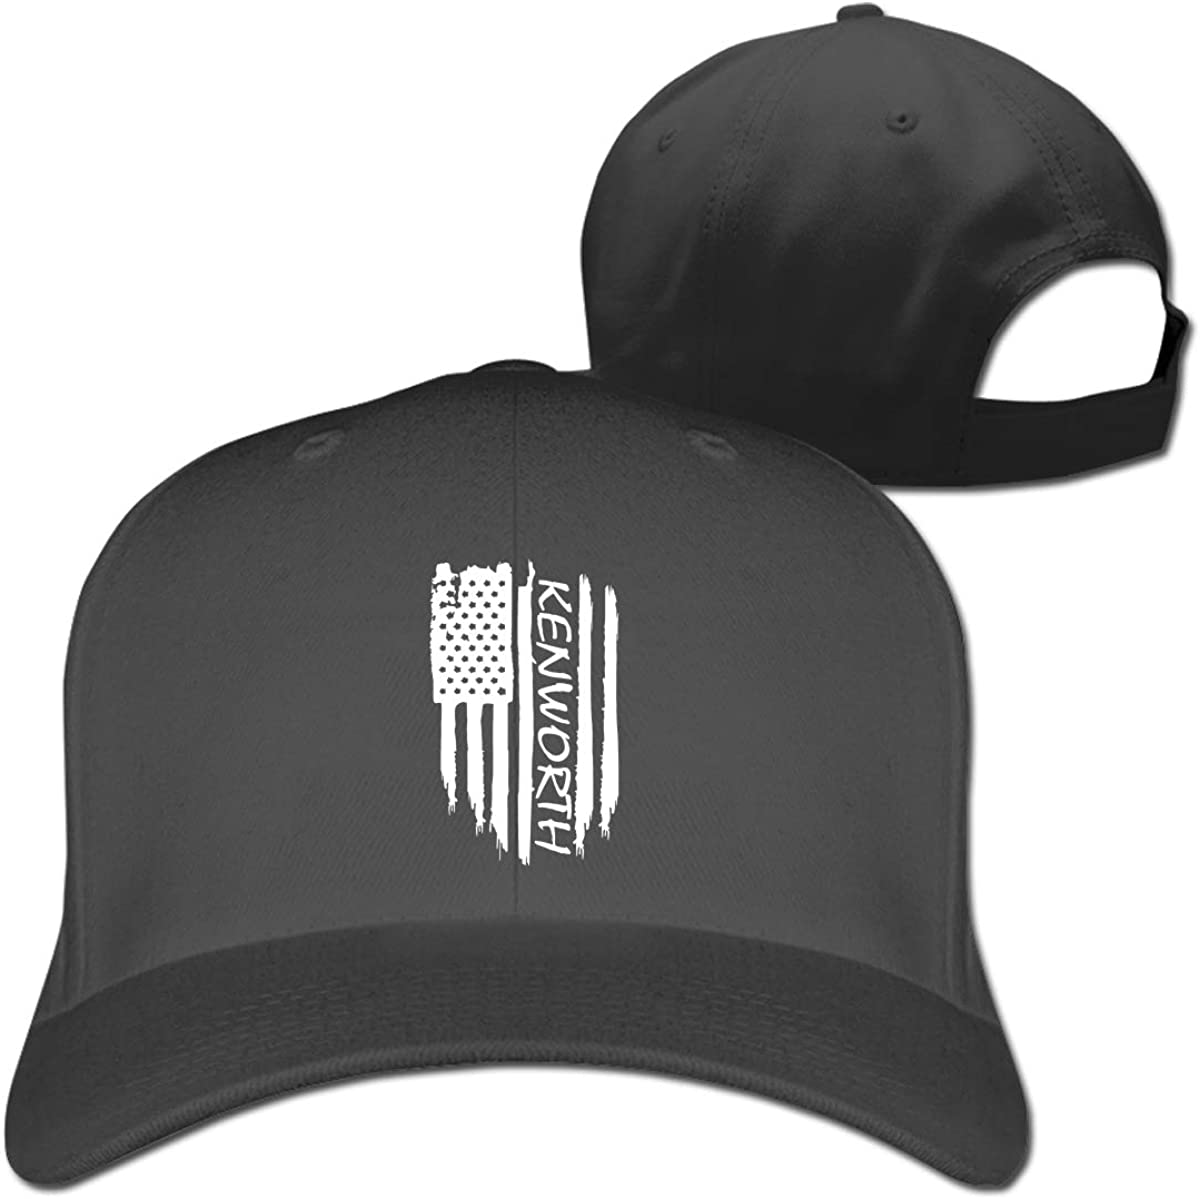 American Flag Kenworth Classic Adjustable Cotton Baseball Caps Trucker Driver Hat Outdoor Cap Fitted Hats Dad Hat Black